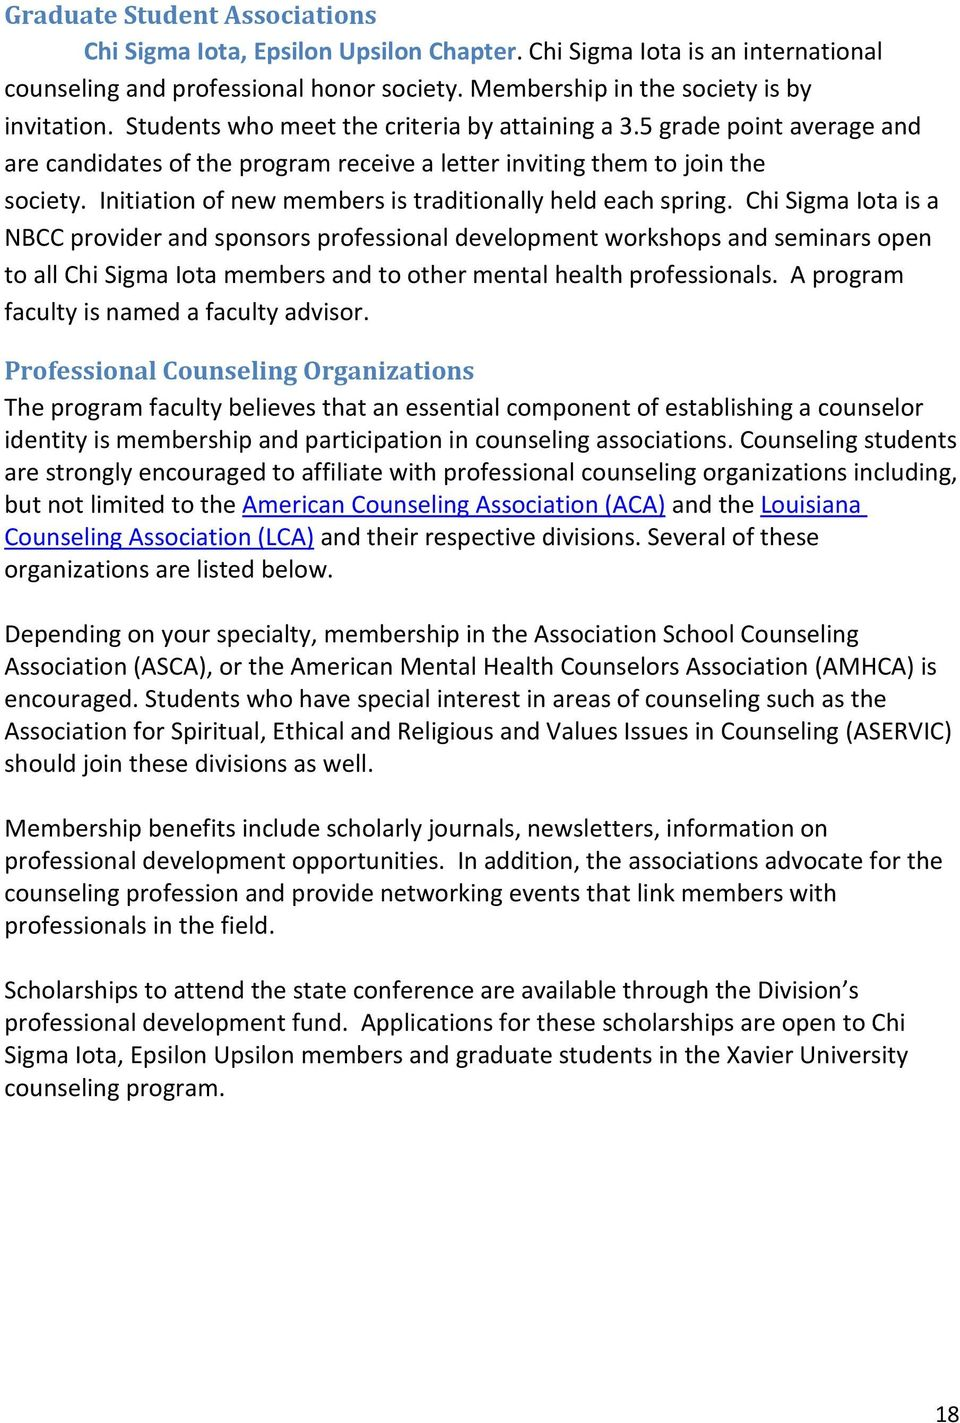 Xavier University Of Louisiana Graduate Student Handbook Counseling